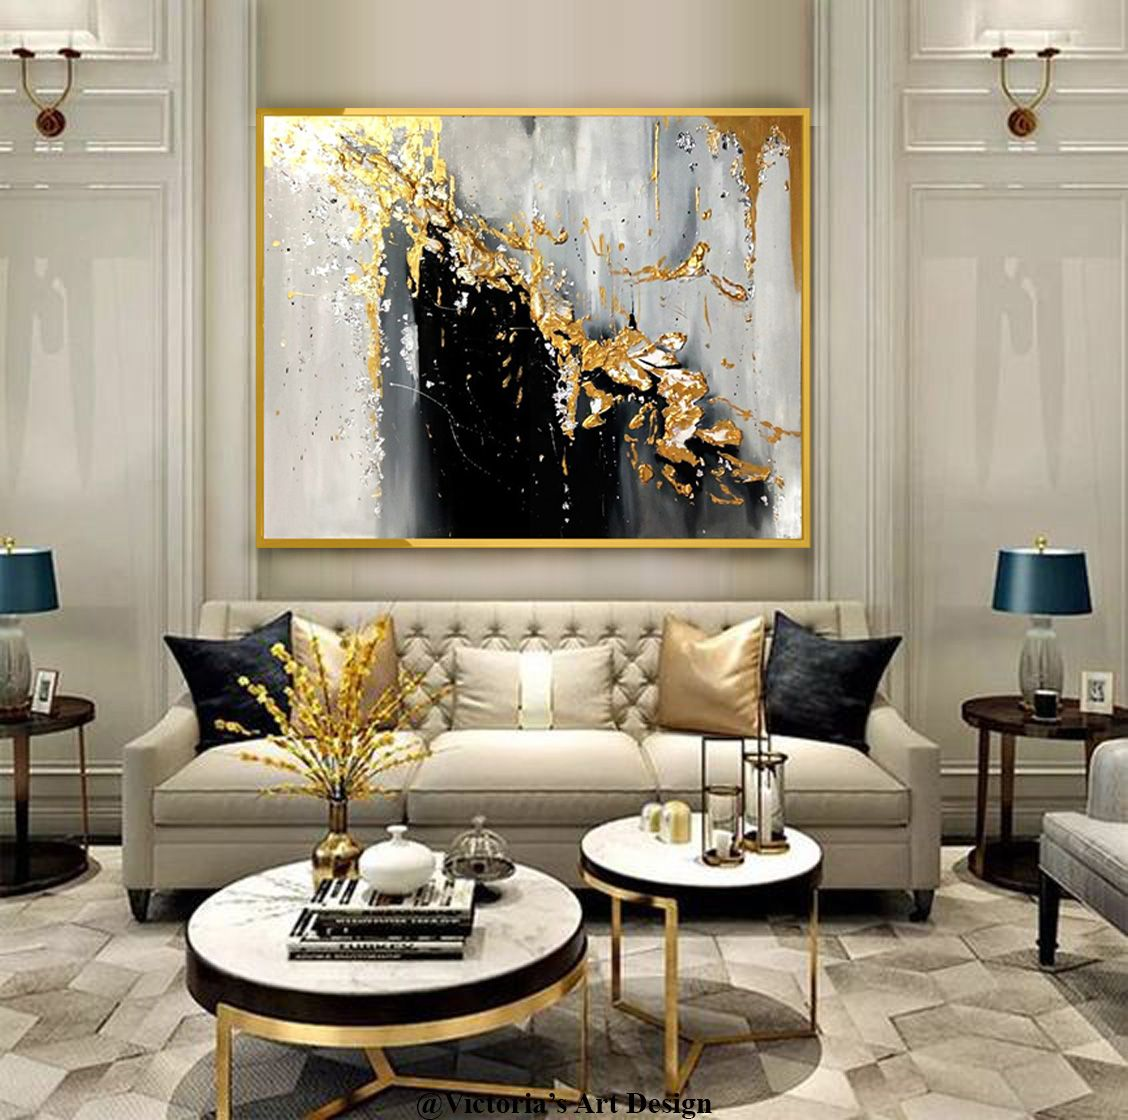 Oil Painting Original Oil Painting Abstract Modern On Canvas Etsy Gold Living Room Living Room Decor Apartment Glam Living Room Oil painting for living room